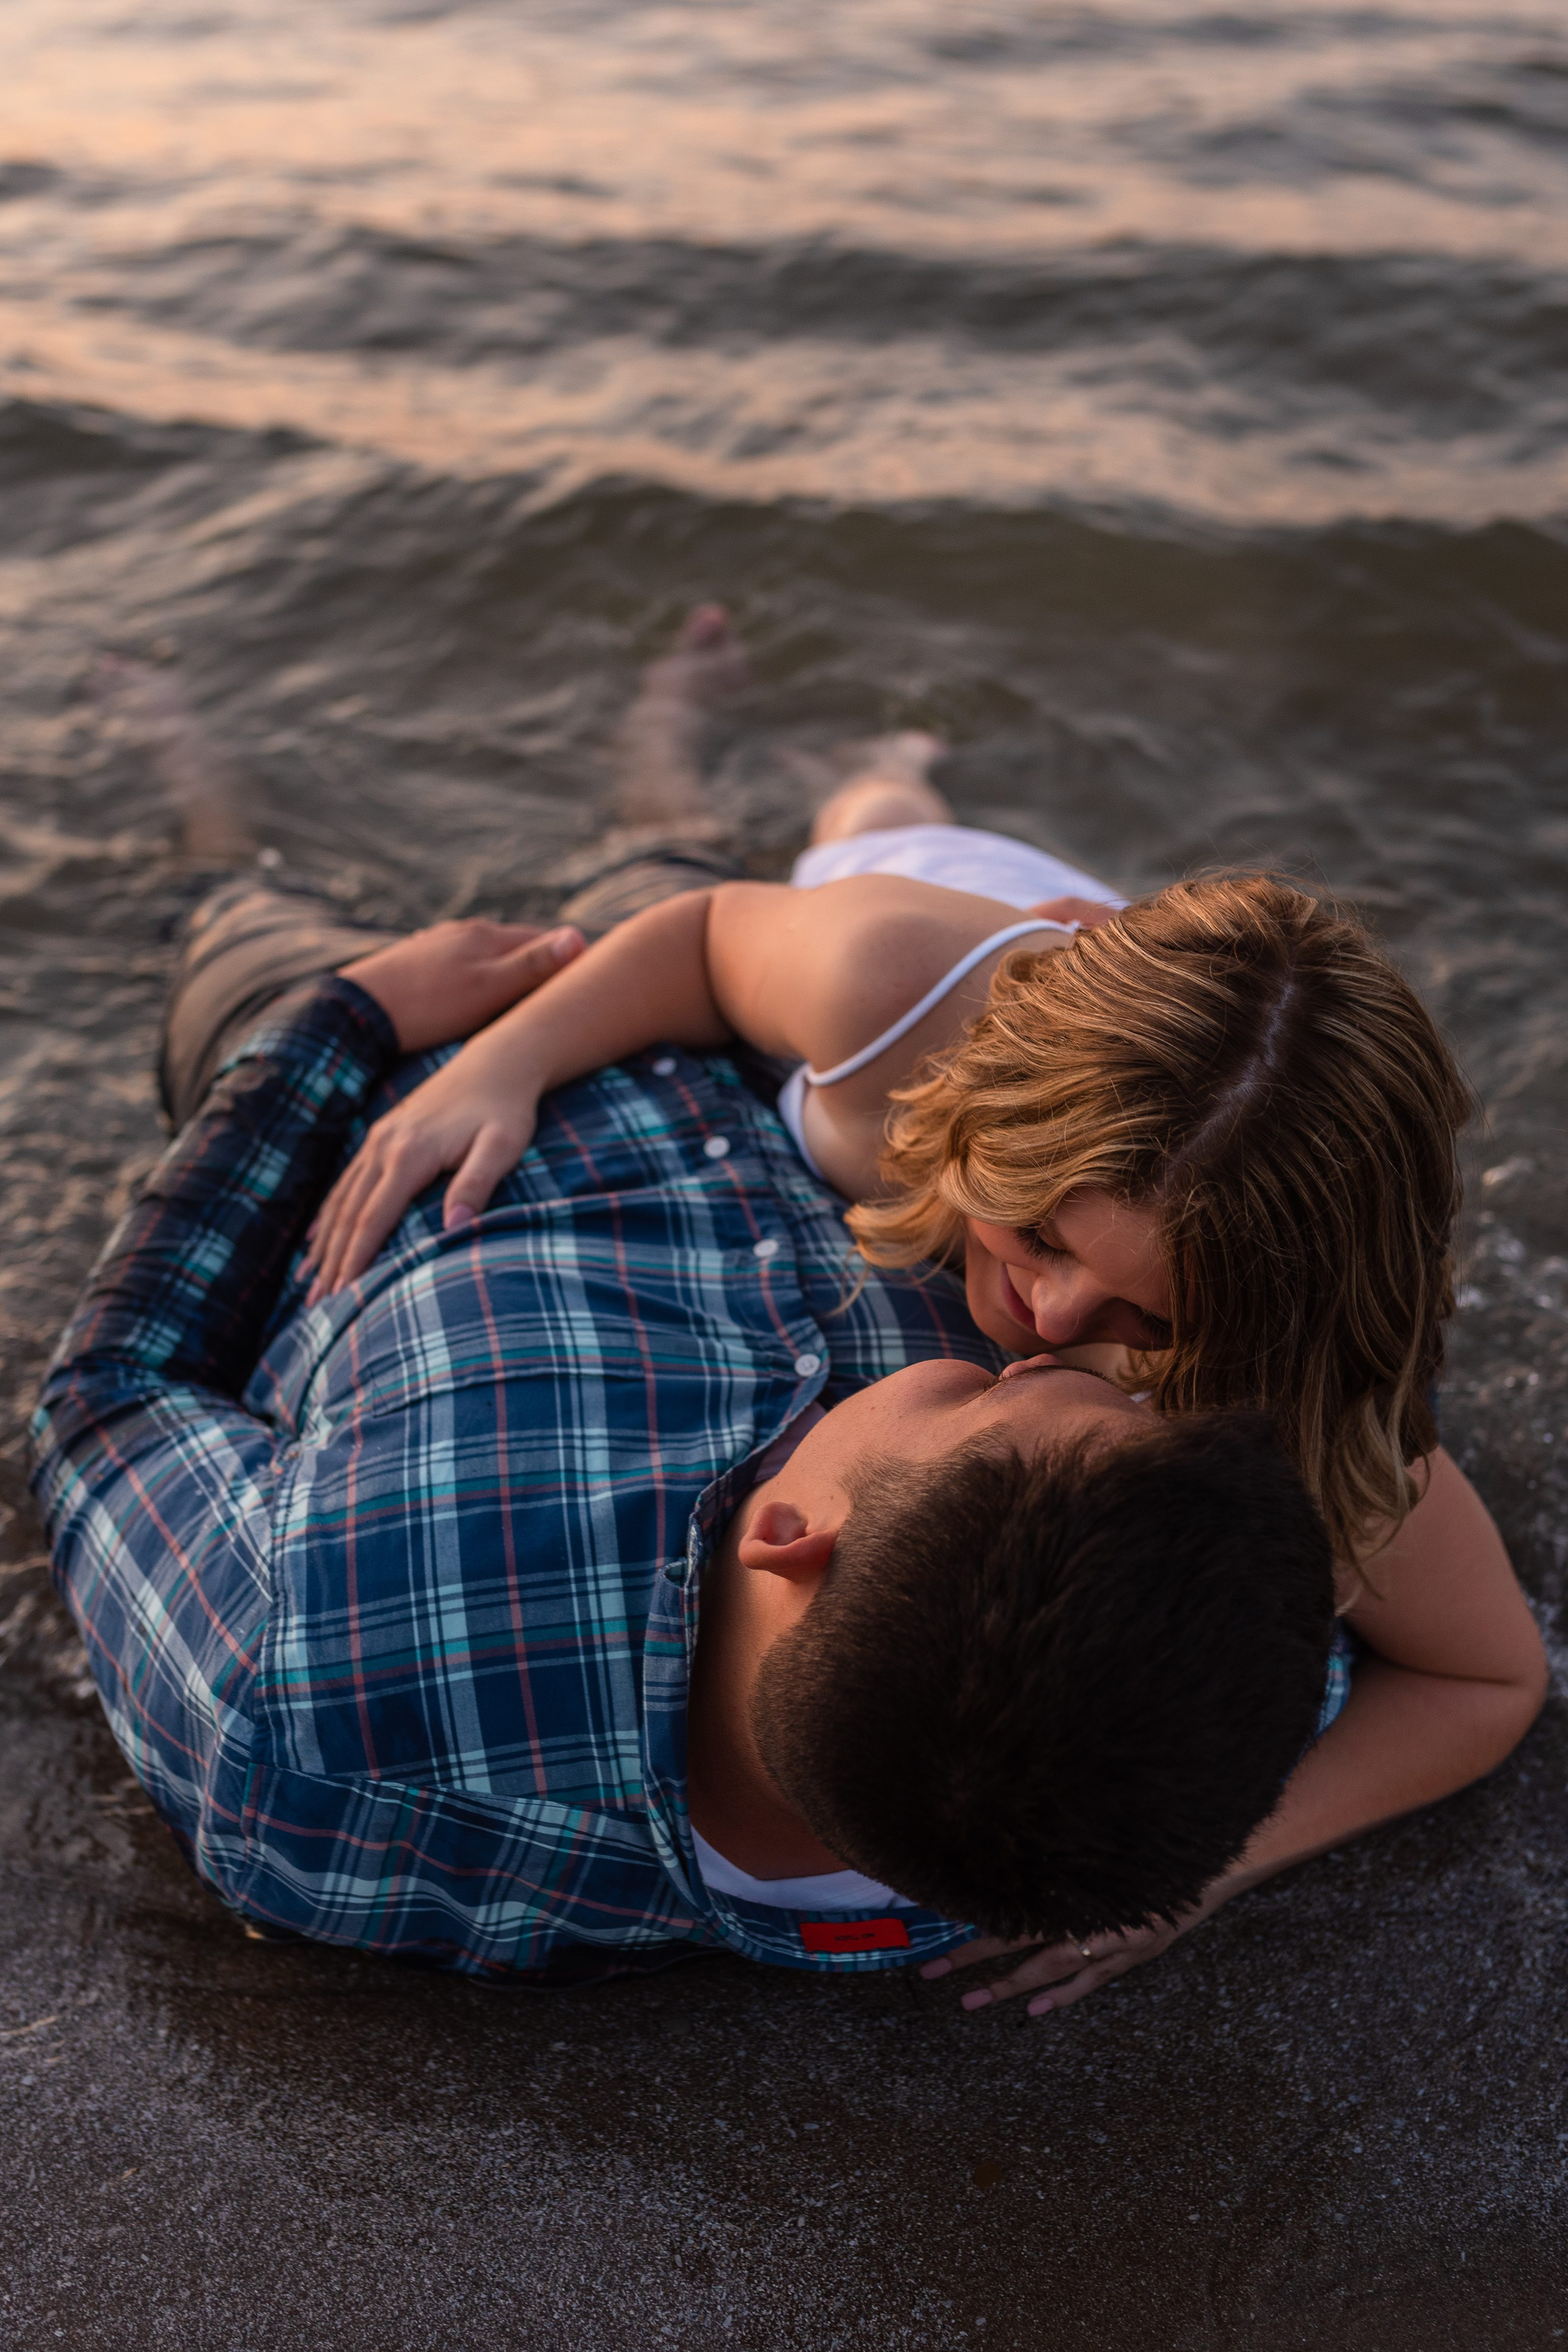 Cleveland Photographer, Downtown Cleveland, Engagement Photographer, Engagement Session, Hannah + Tyler, Hannh and Tyler, Lake Erie, Lake Erie Engagement Session, Lake Erie photos, Ohio Photographer, Wedding Photographer, cleveland engagement photographer, couple in lake, couple in water, couples session, couples session in water, ohio engagement photographer, photos in water, sunset photos